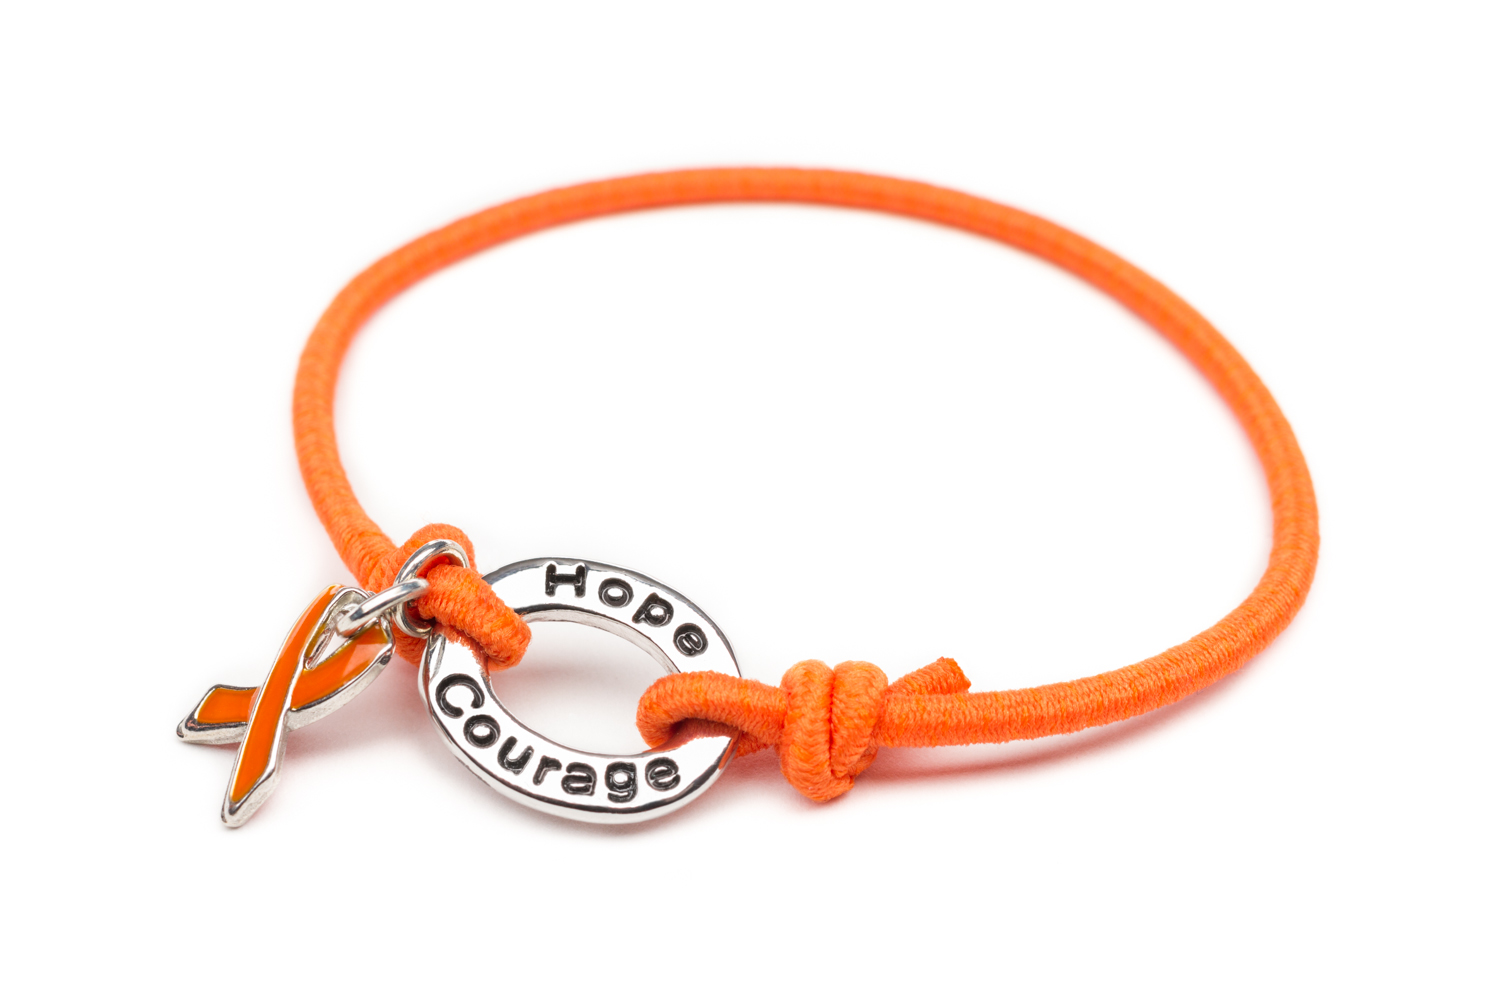 Cancer Orange Ribbon Silver Bracelet Awareness Charm Find The Cure Stretch